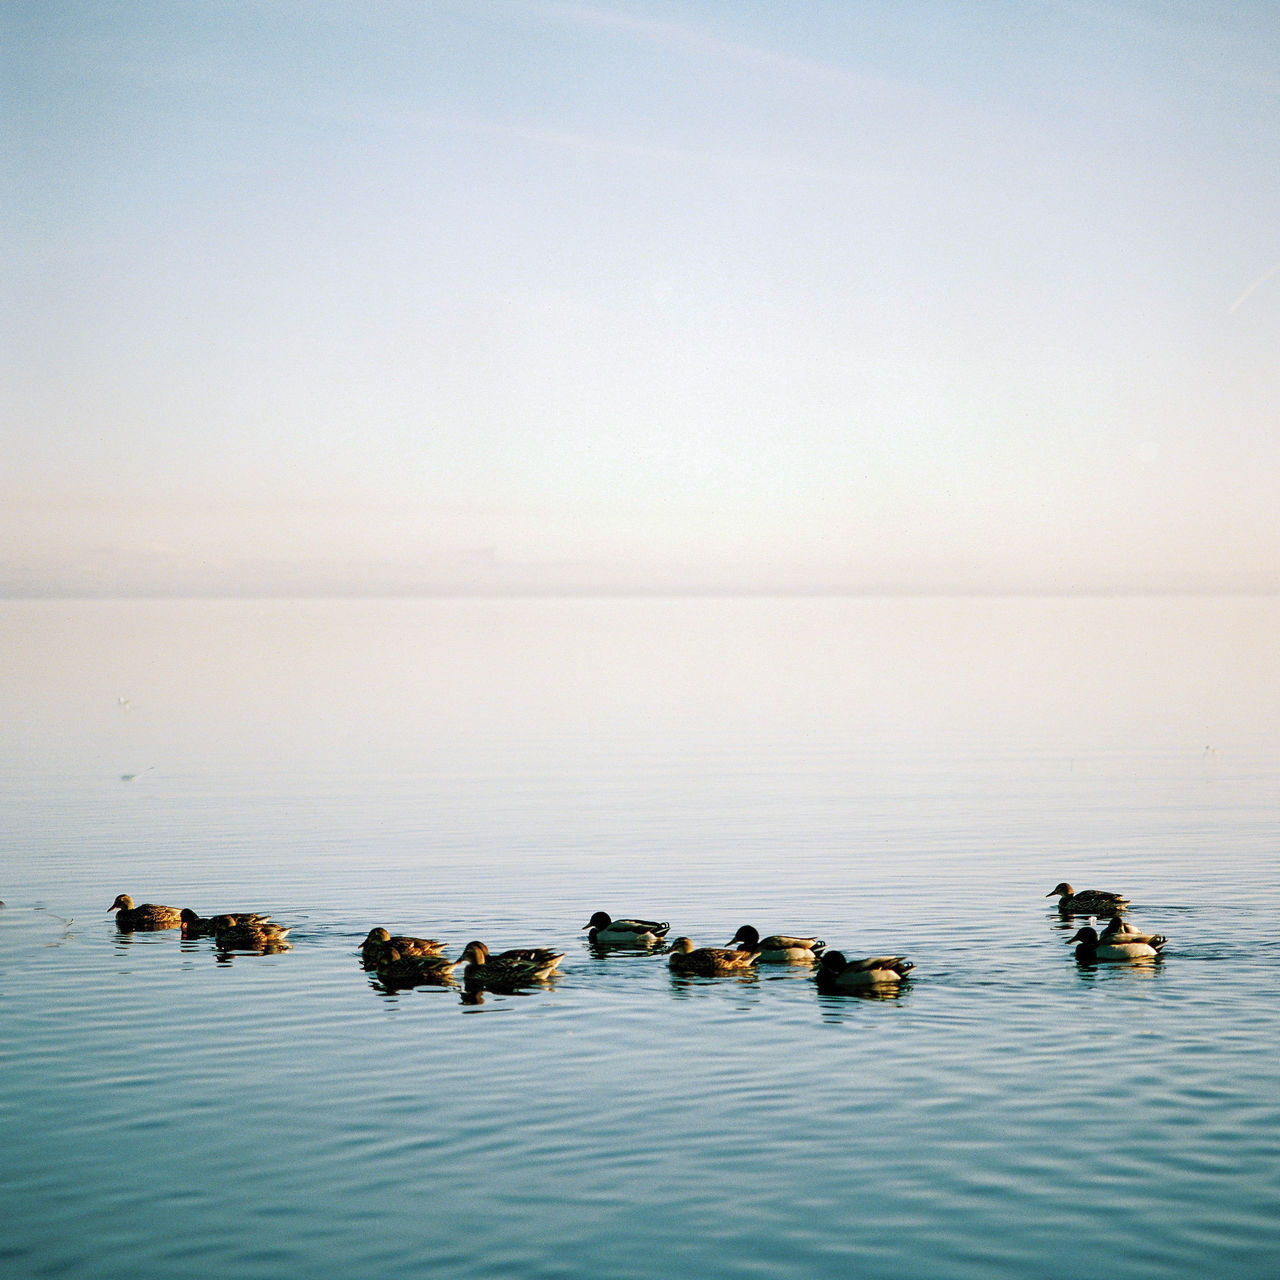 A flock of ducks enjoy an unusually tranquil Lough Neagh on Boxing Day. Animal Themes Ballyronan Beauty In Nature Boxing Day Day Duck Horizon Over Water Ireland Lough Neagh Nature No People Northern Ireland Outdoors Sea Sky Sunset Tranquil Scene Tranquility Water Waterfront